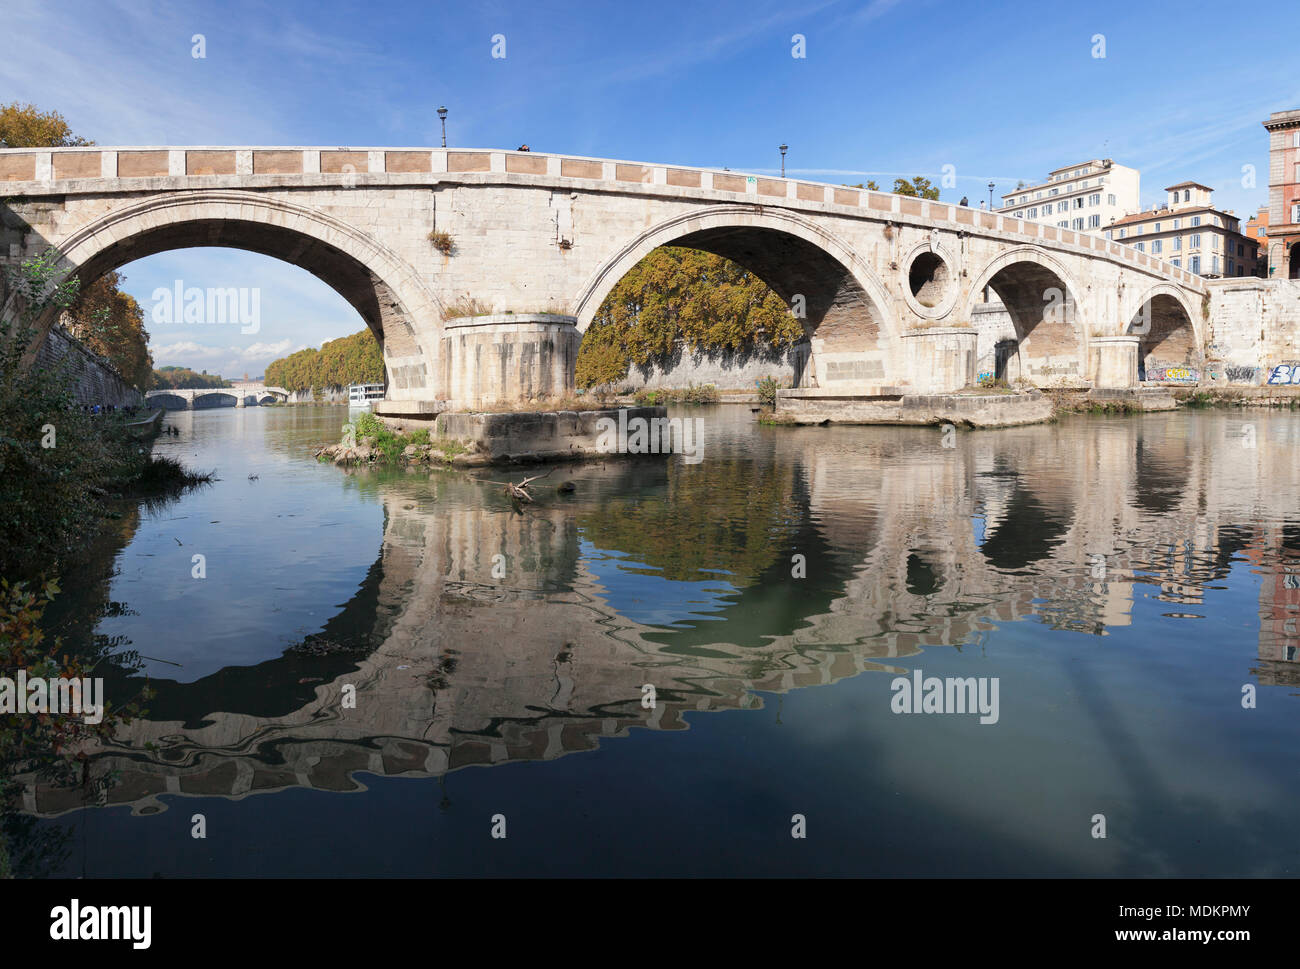 Ponte Garibaldi Bridge over the Tiber, Rome, Lazio, Italy - Stock Image